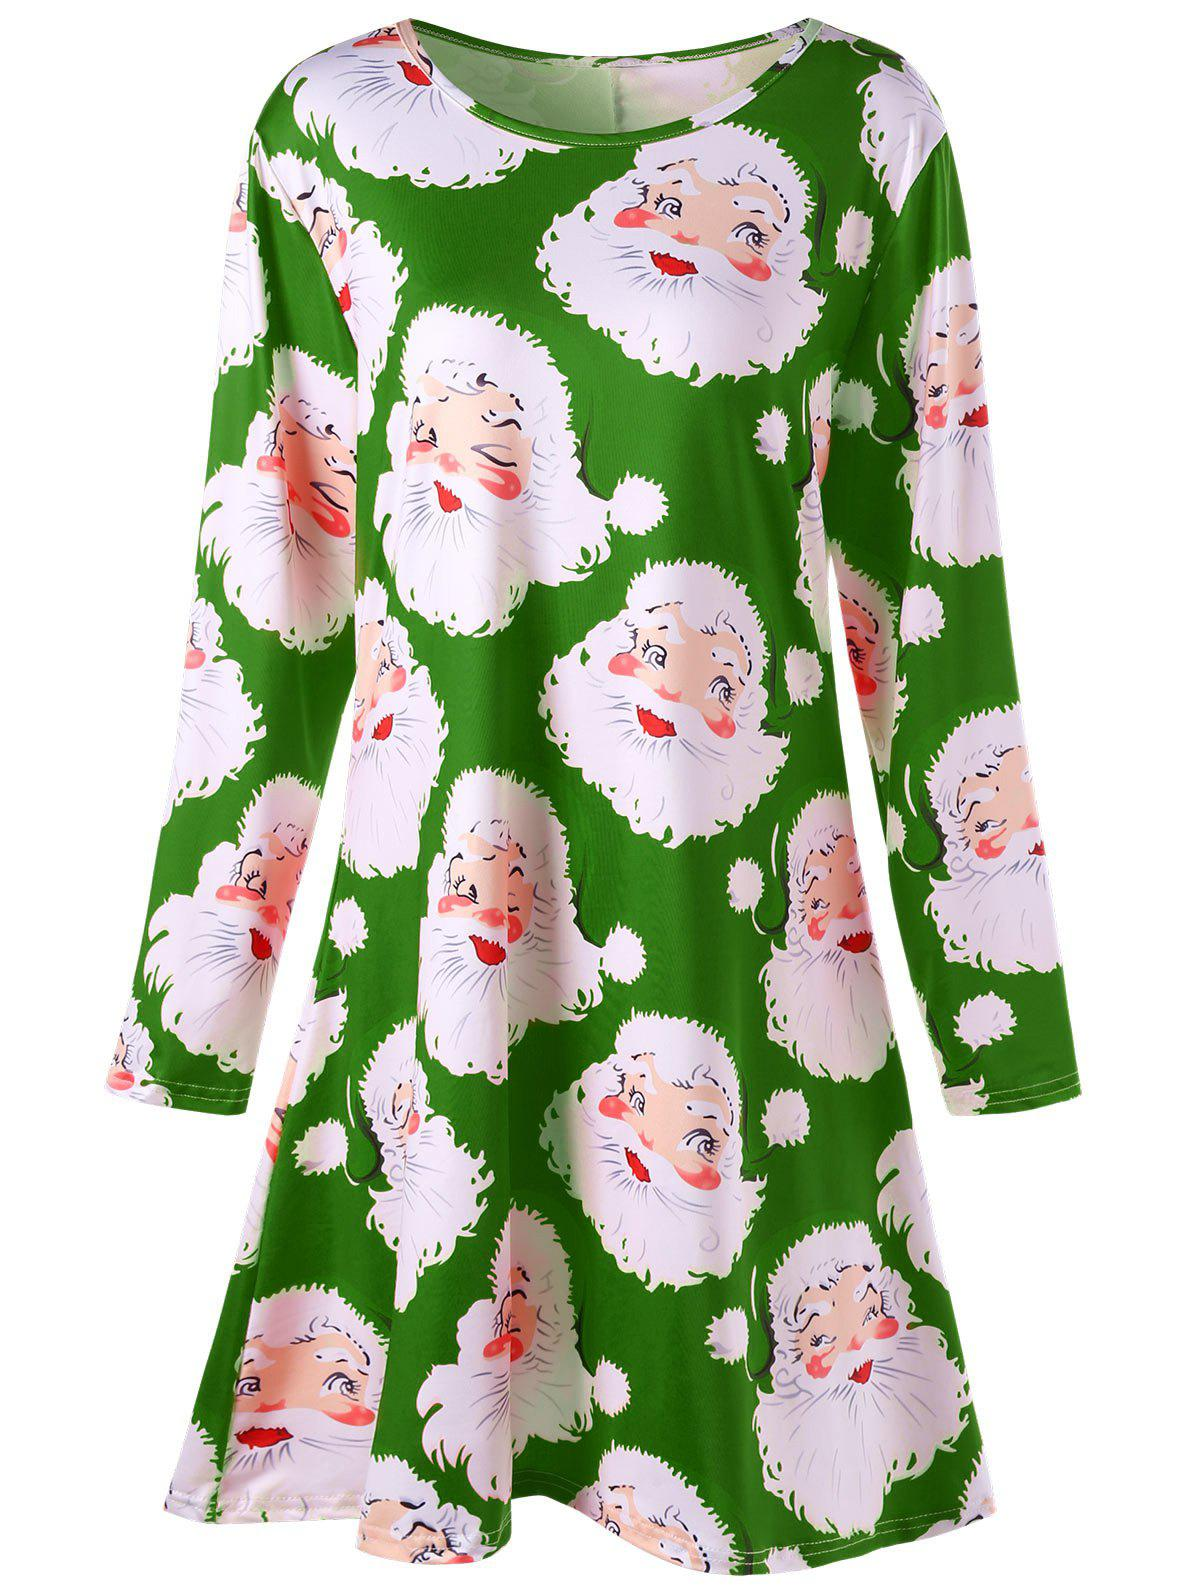 Plus Size Santa Claus Print Mini Swing Dress plus size christmas santa claus print mini swing dress